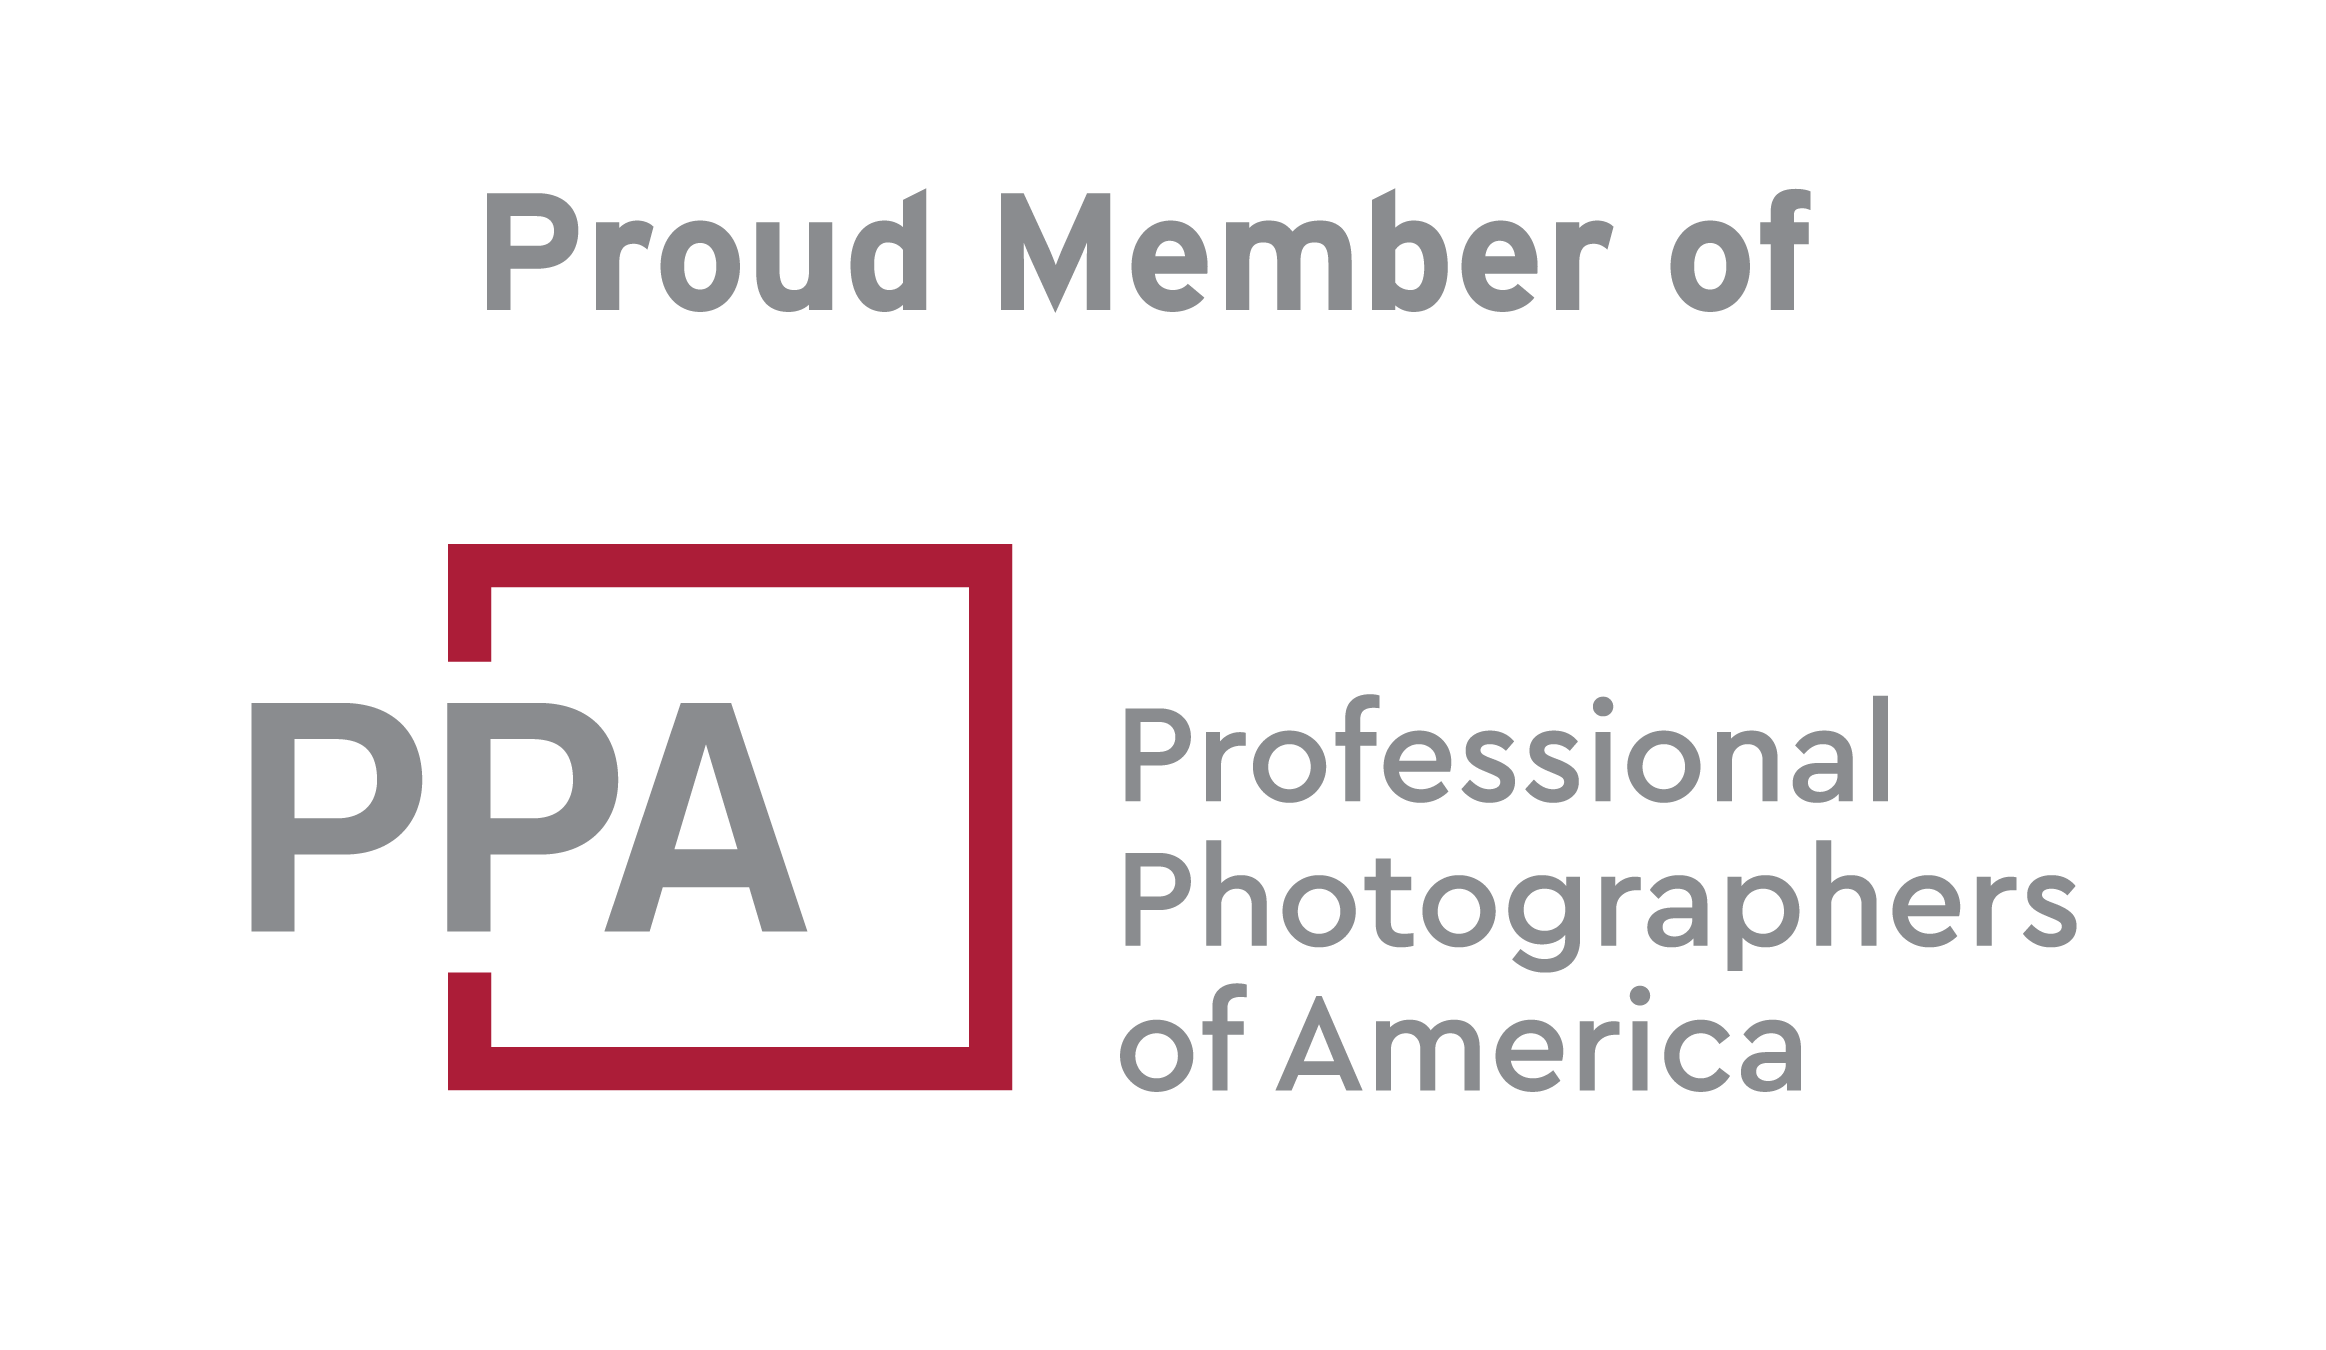 PPA, Professional Photographers of America